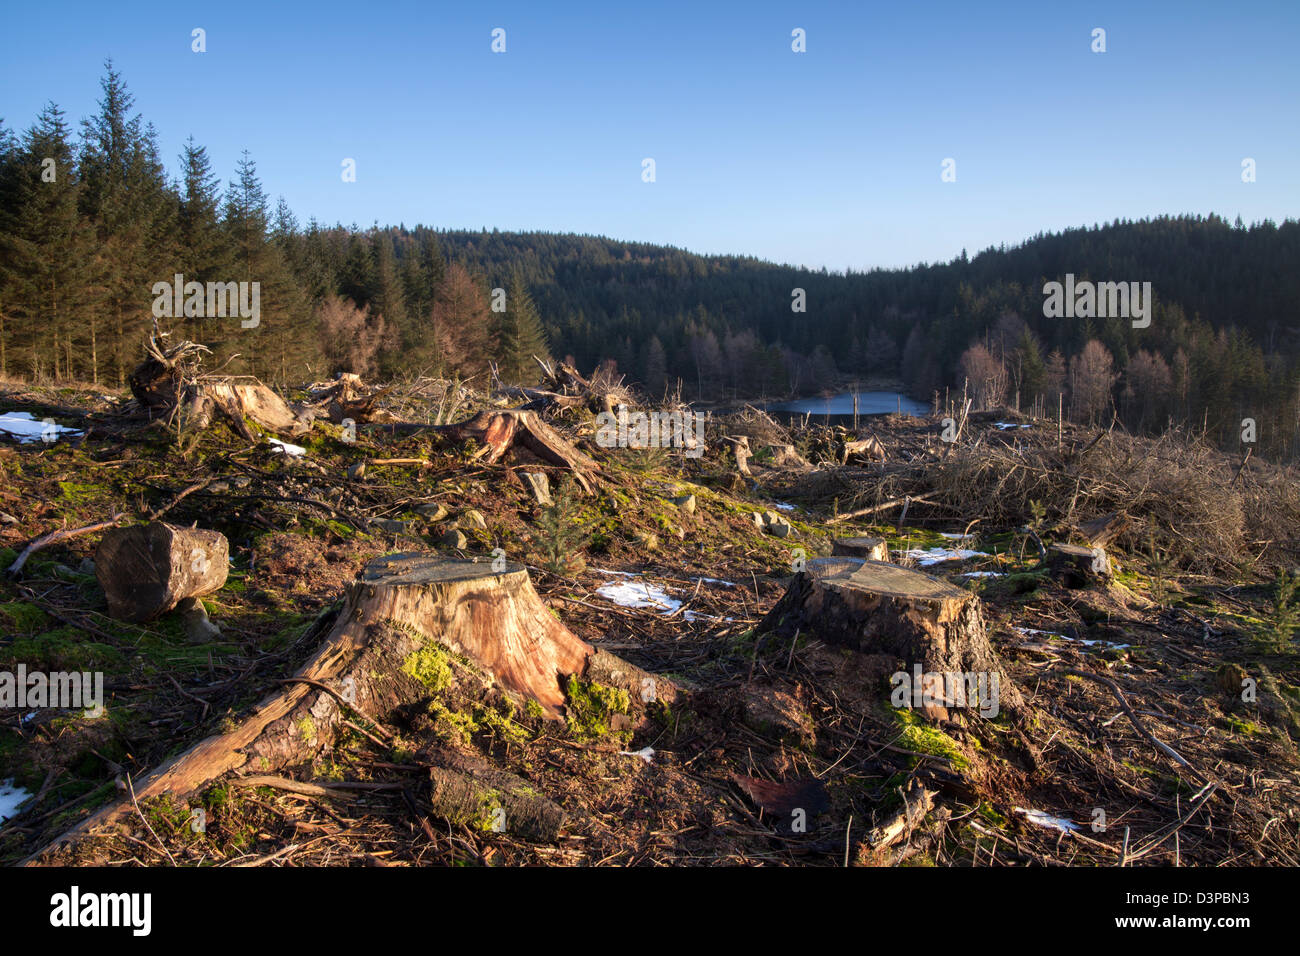 Gummers How forestry operations, coniferous tree felling in the English Lake District UK. - Stock Image